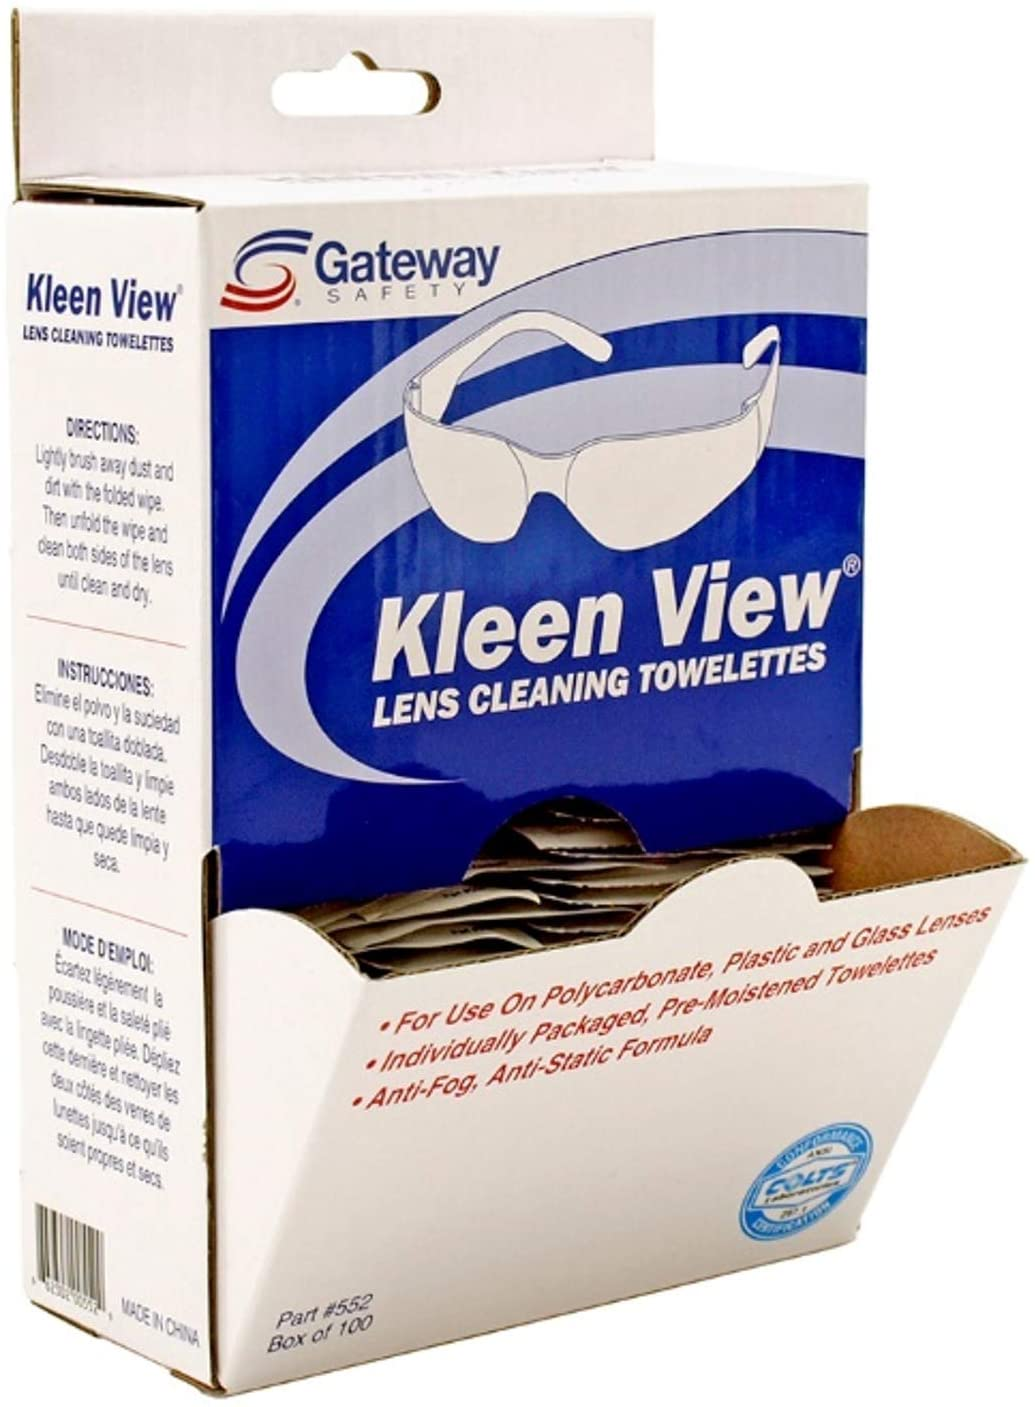 Kleen View Lens Cleaning Towelettes 100-pc